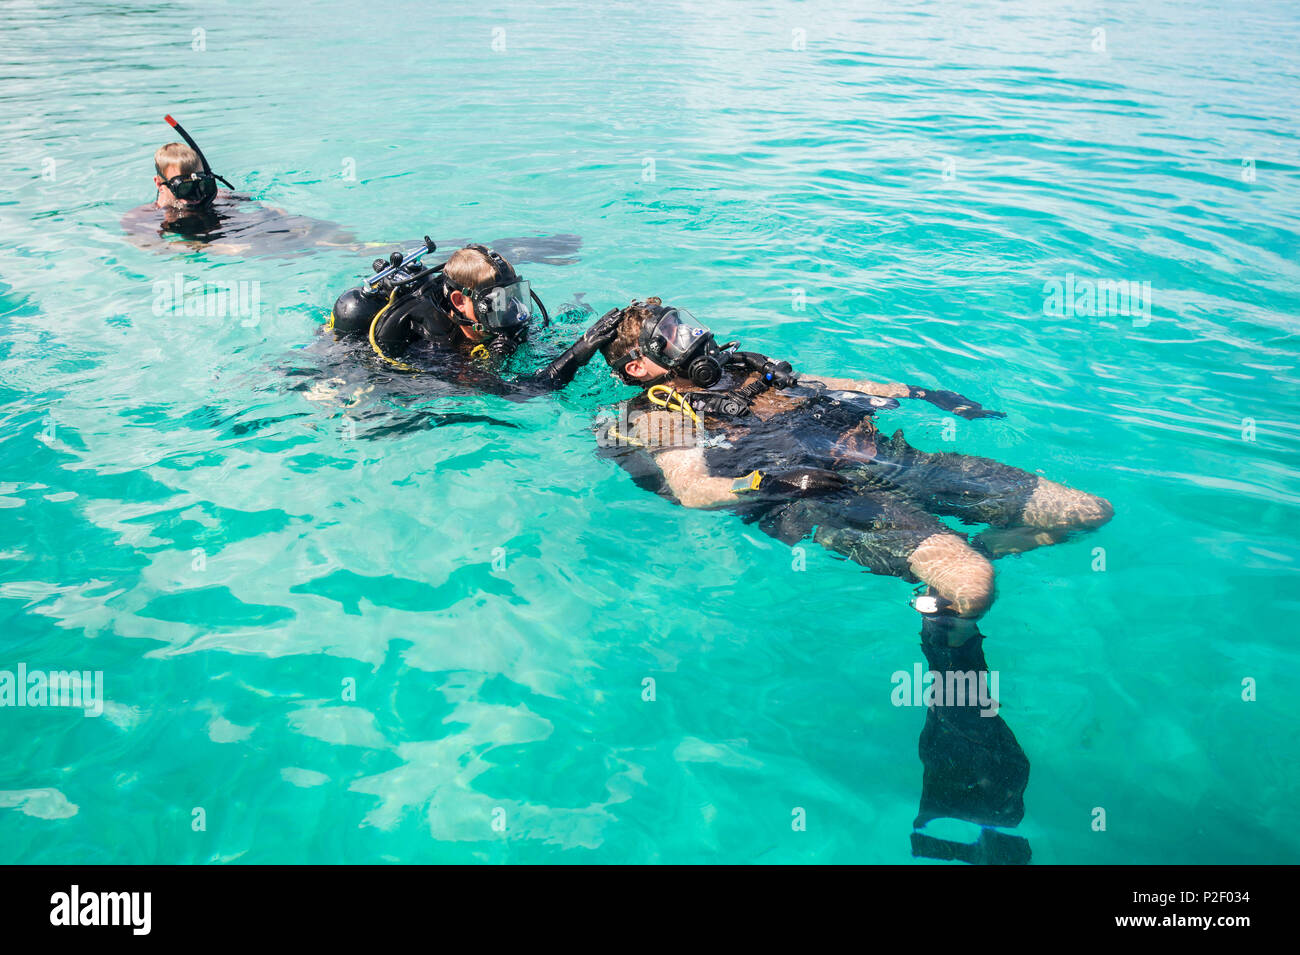 Members of Underwater Construction Team (UCT) 2 perform surface checks in Kwajalein, Marshal Islands while participating in Valiant Shield Sep. 15, 2016. Valiant Shield is a biennial U.S. Air Force, Navy and Marine Corps exercise held in and around Guam, focusing on real-world proficiency in sustaining joint forces at sea, in the air, on land and in cyberspace. (U.S. Navy Combat Camera Photo by Mass Communication Specialist 2nd Class Daniel Rolston/Released) Stock Photo